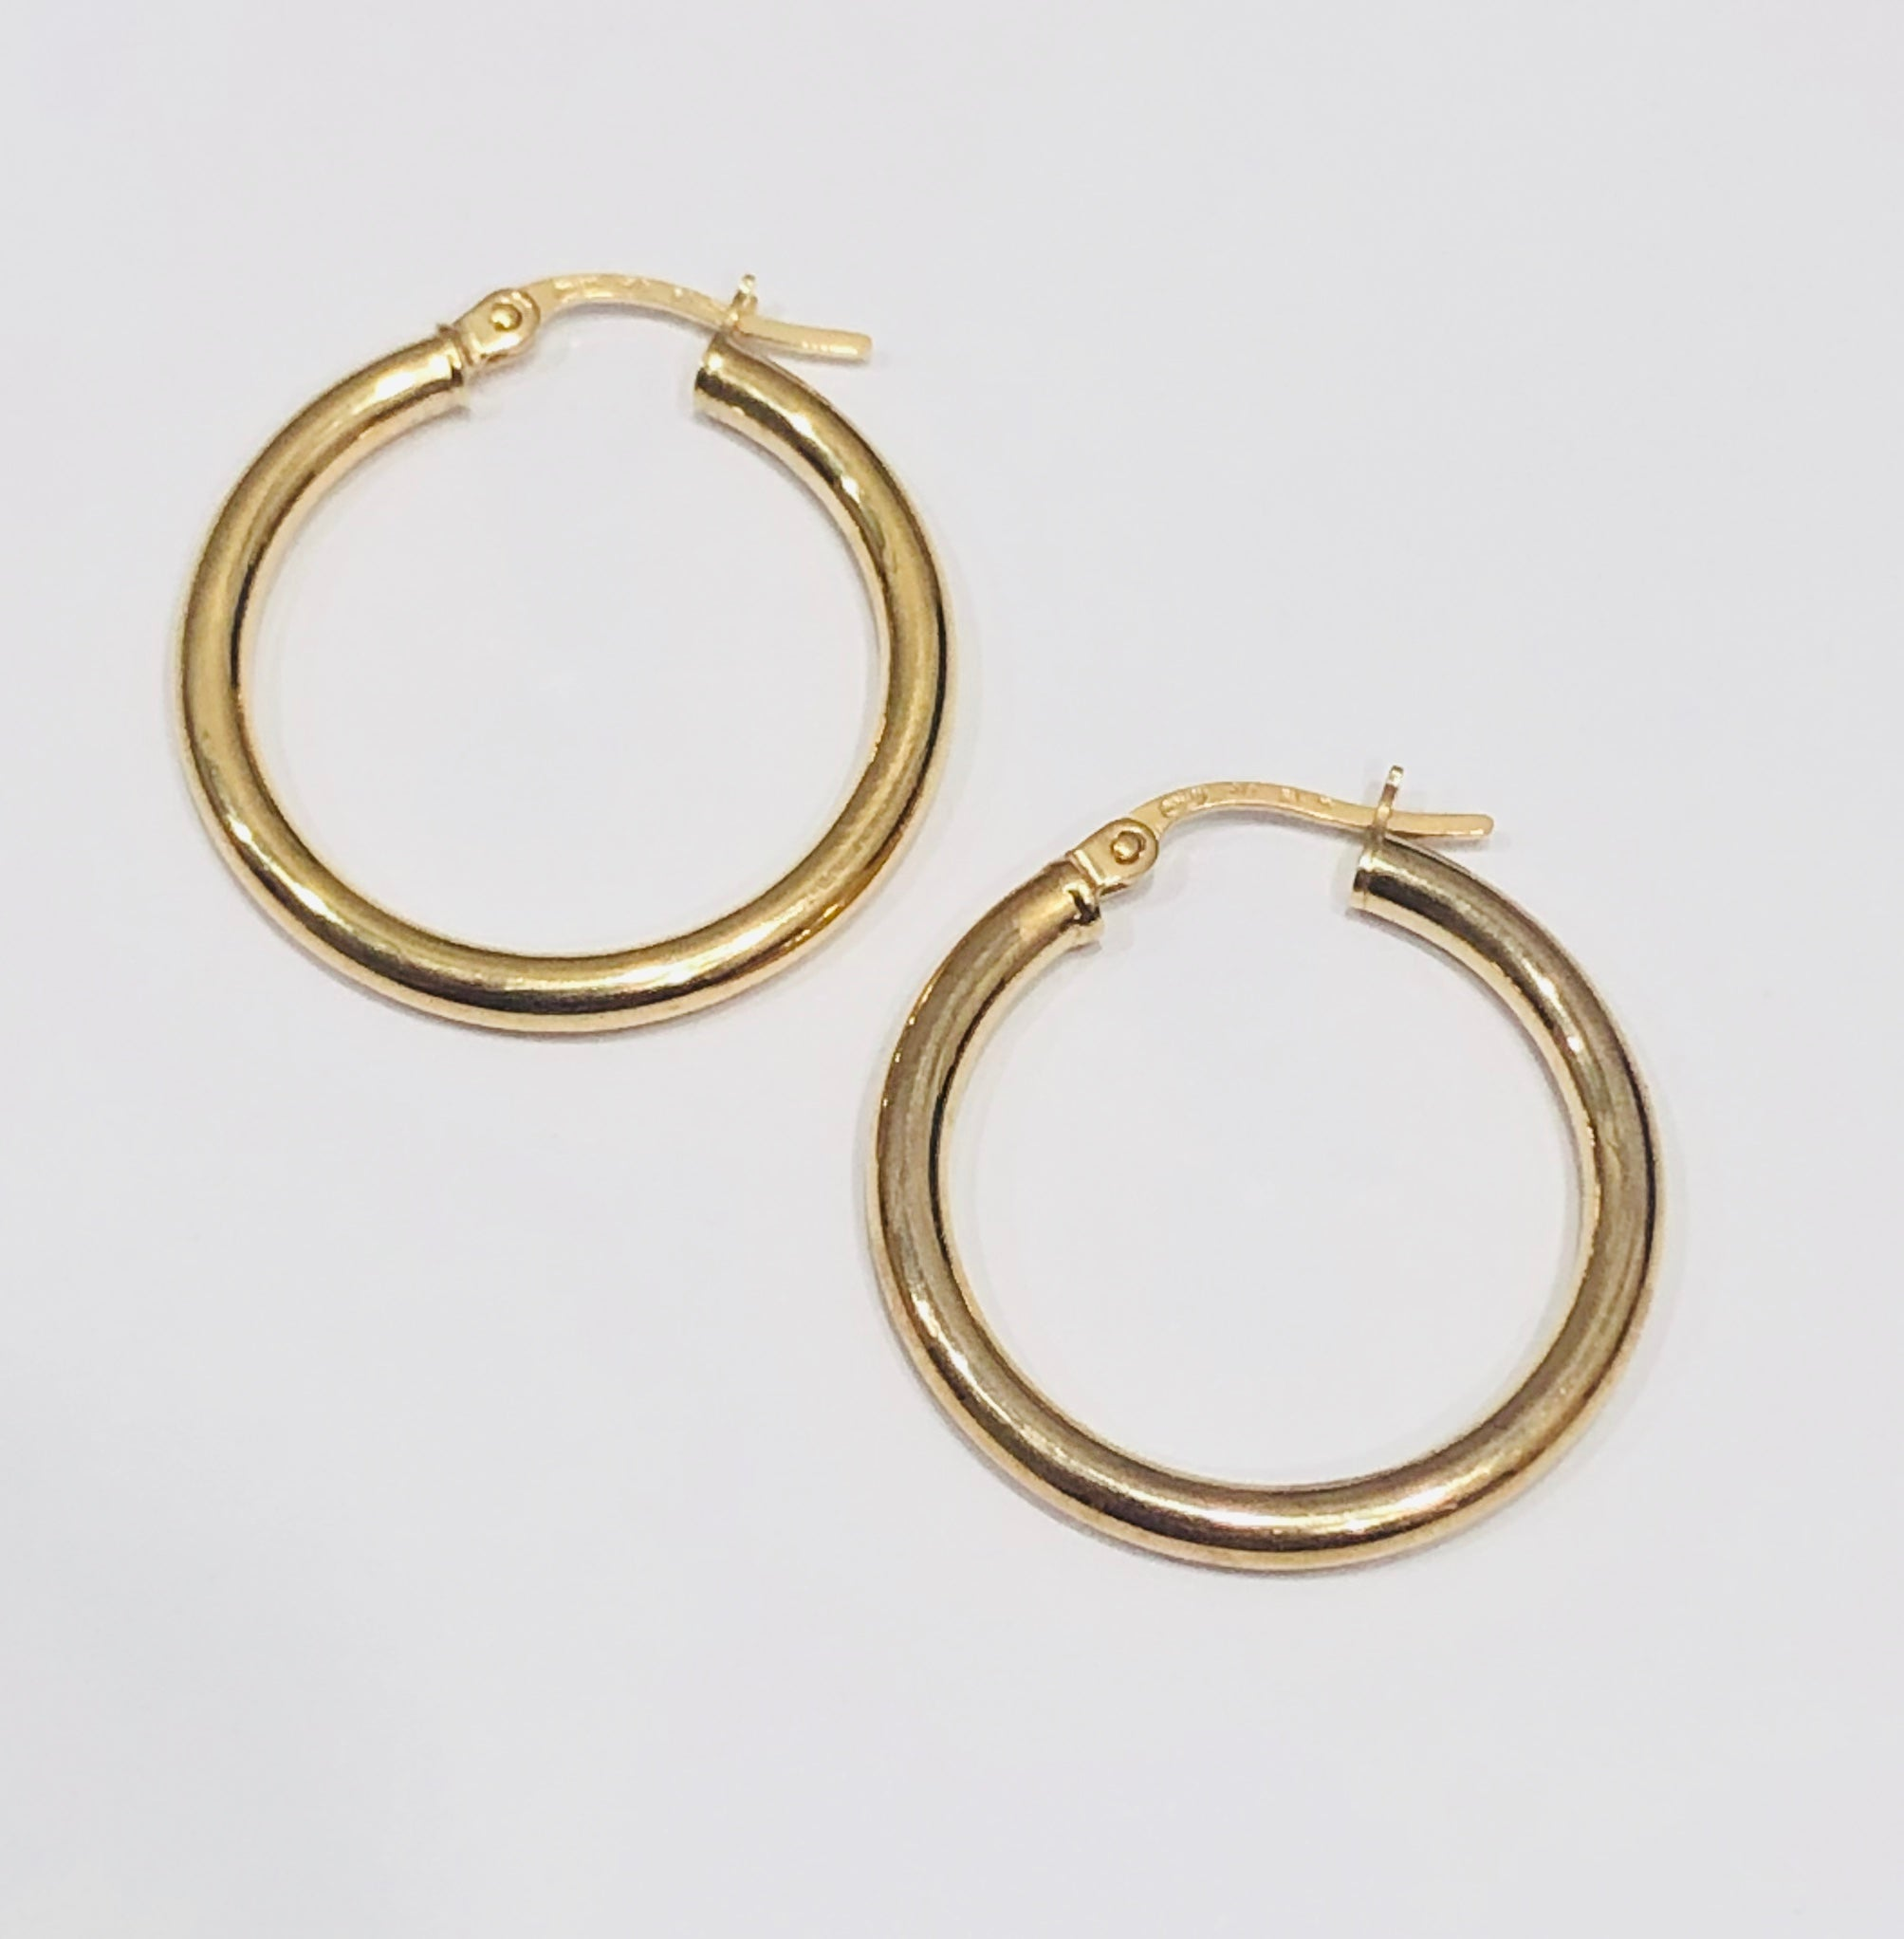 9ct Gold Hoop Earrings 19mm x 3mm - 016